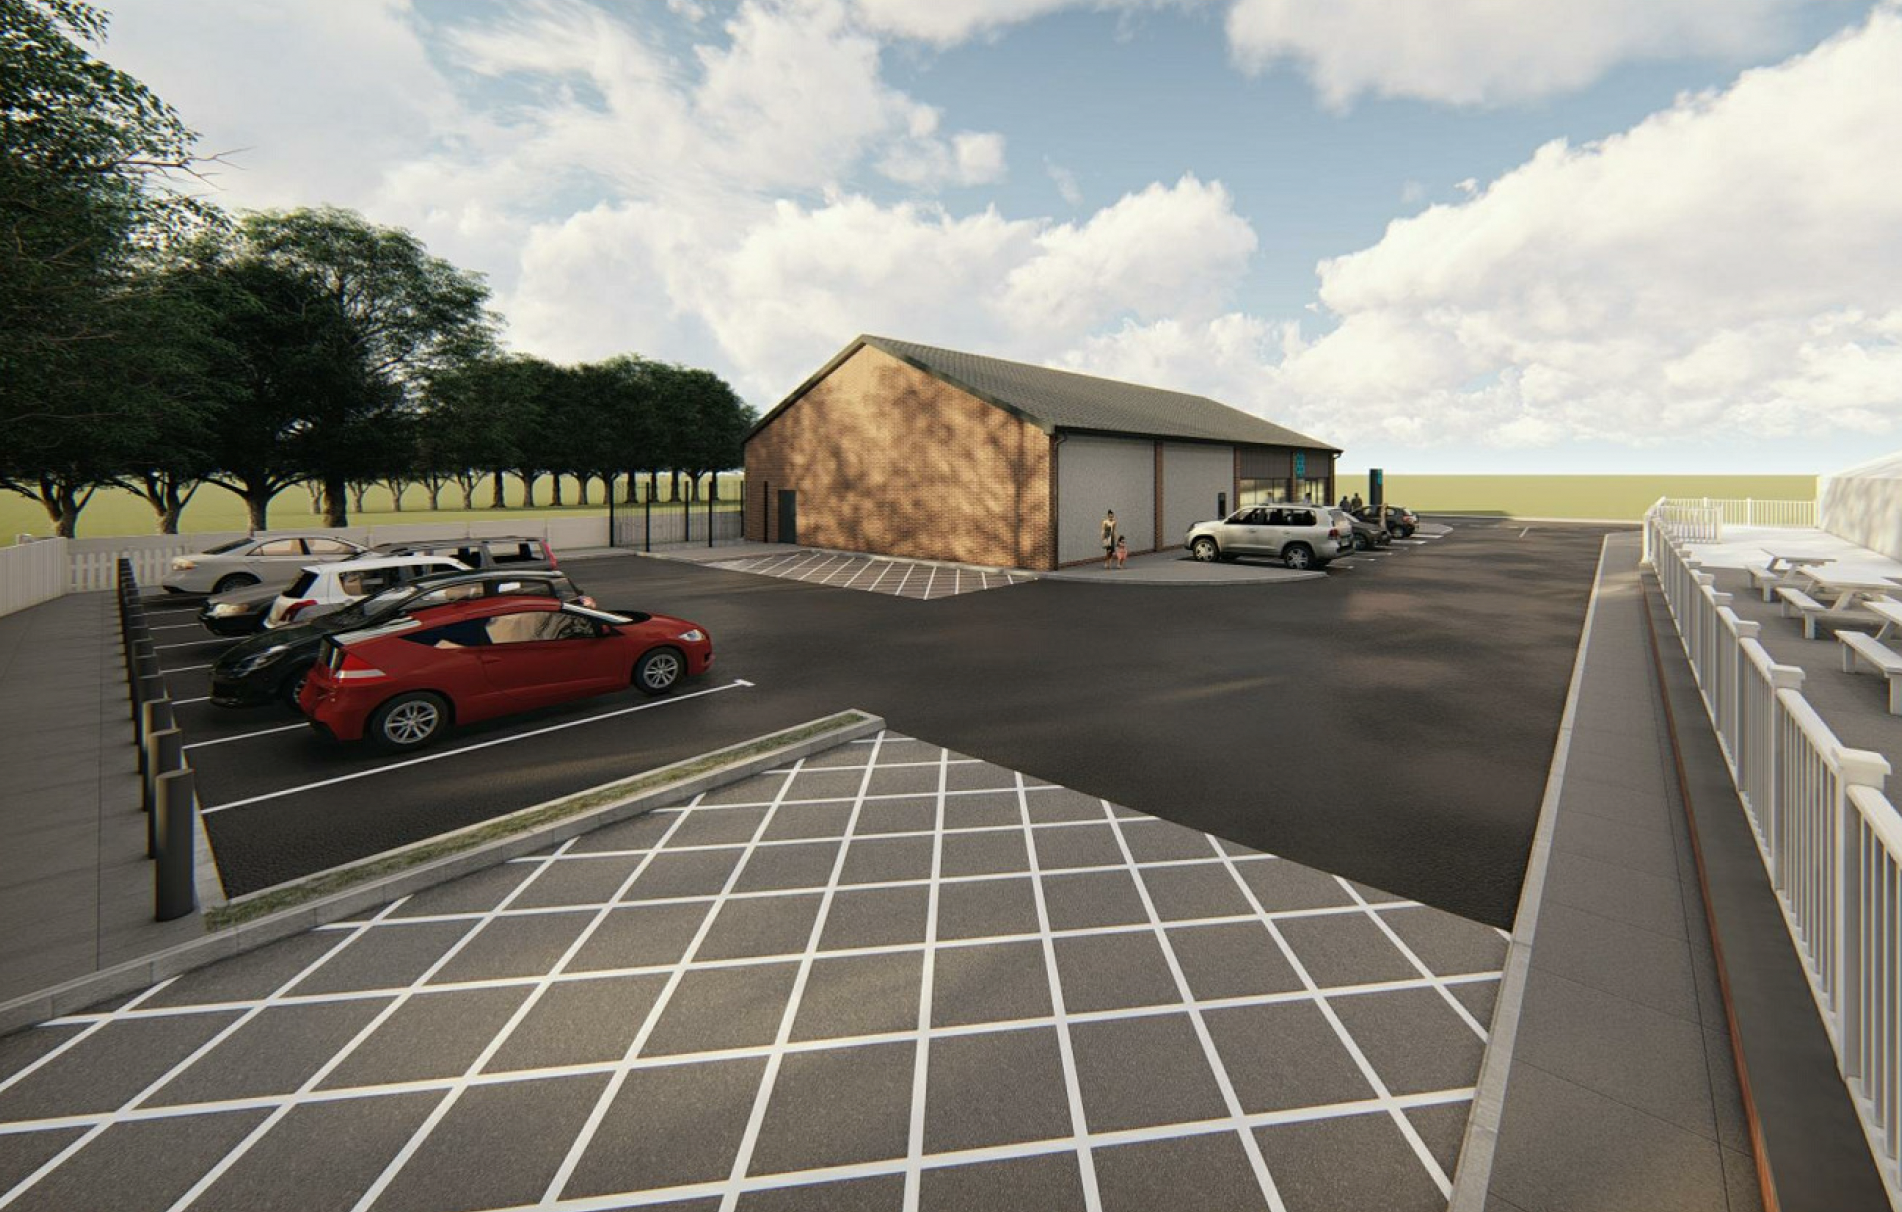 Rear view showing car parking and loading door as viewed from the vehicle turning area.